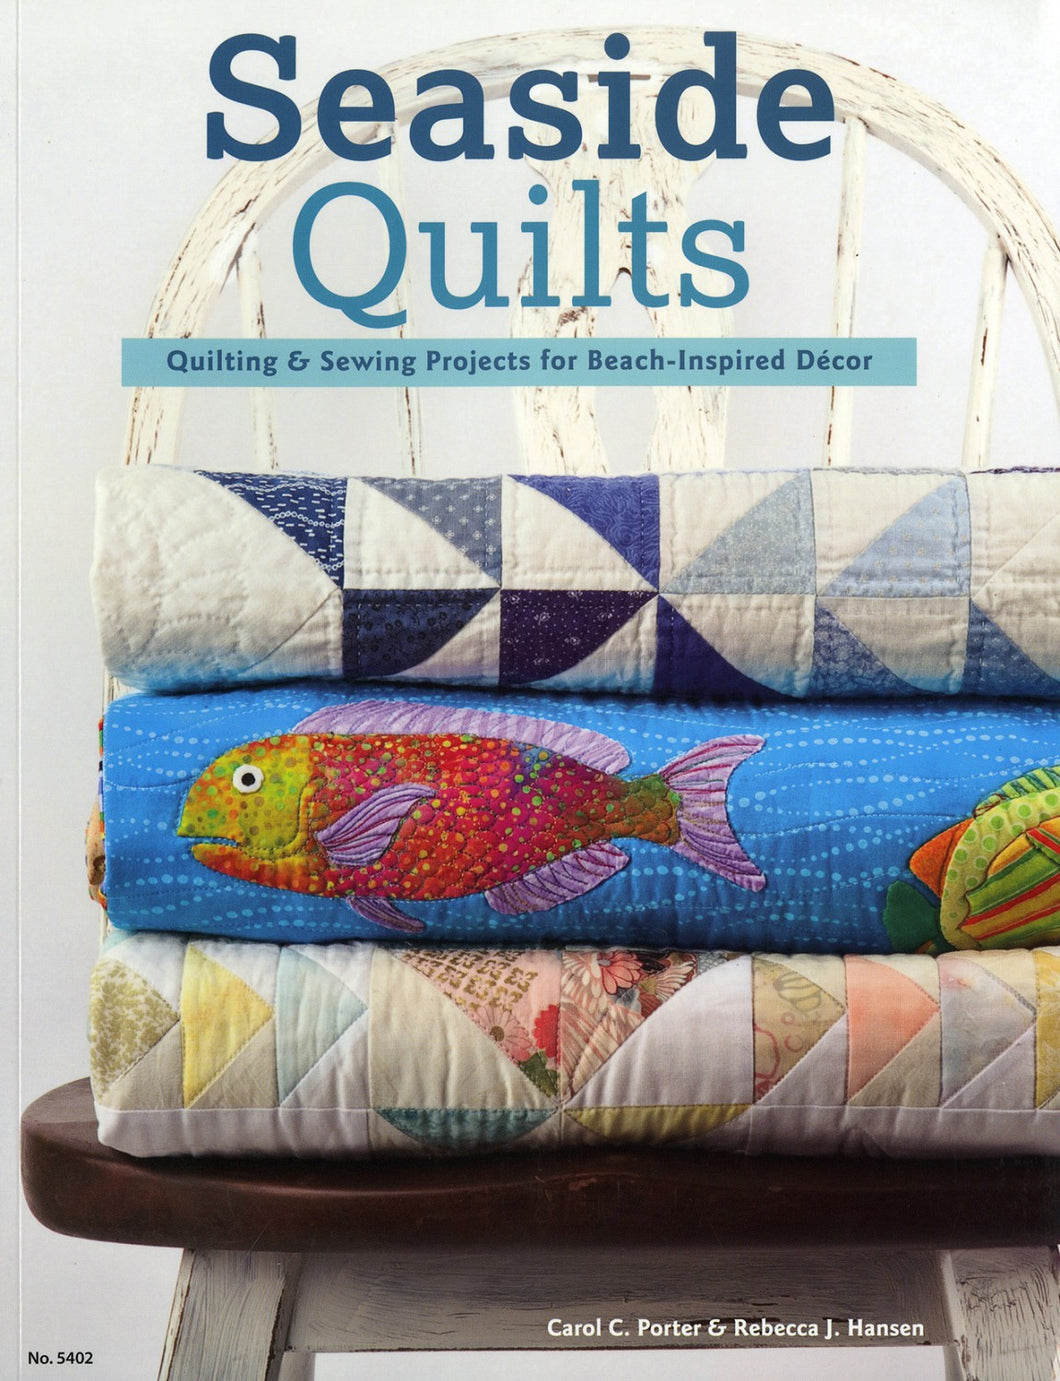 Quilting Projects Beach &Cottage Style - Softcover - DO5402